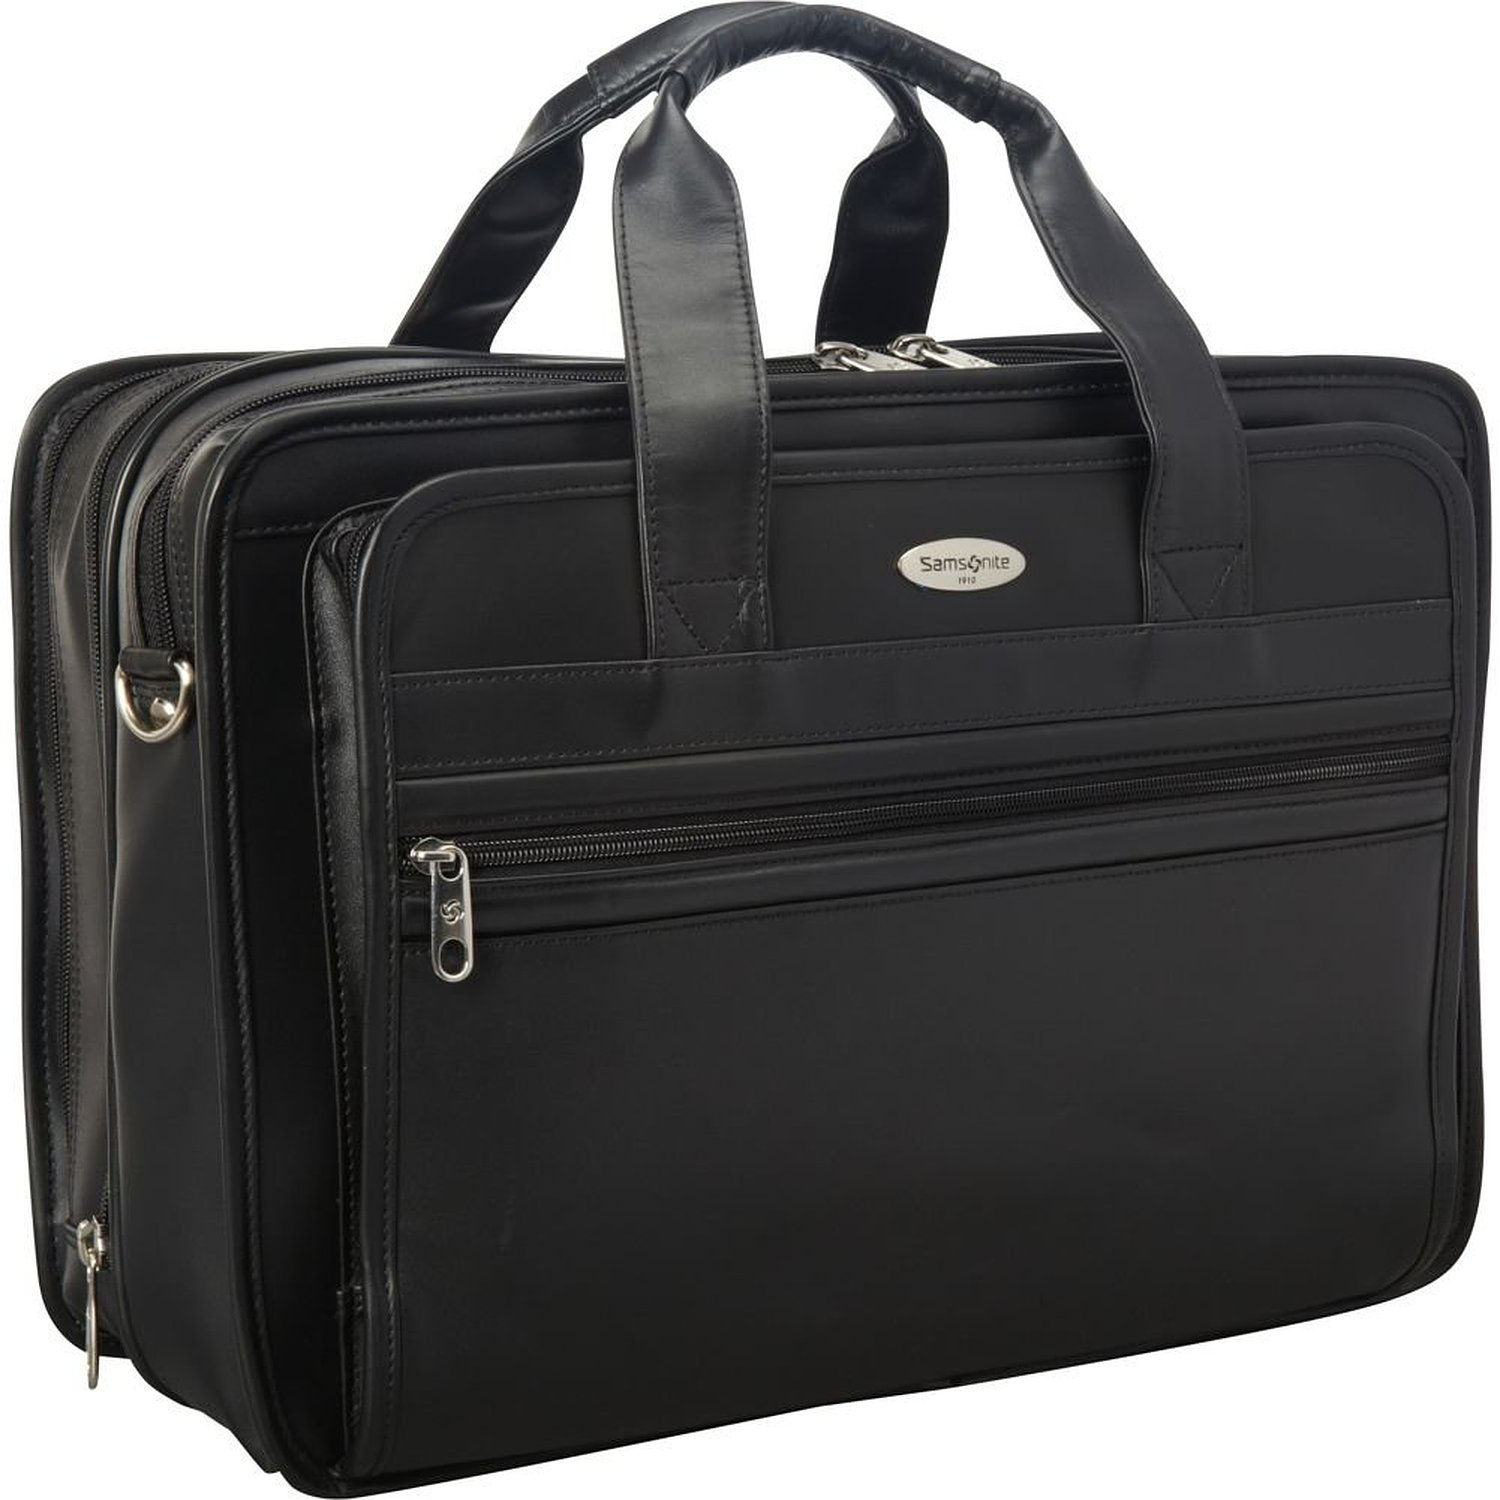 samsonite business cases expandable leather laptop bag